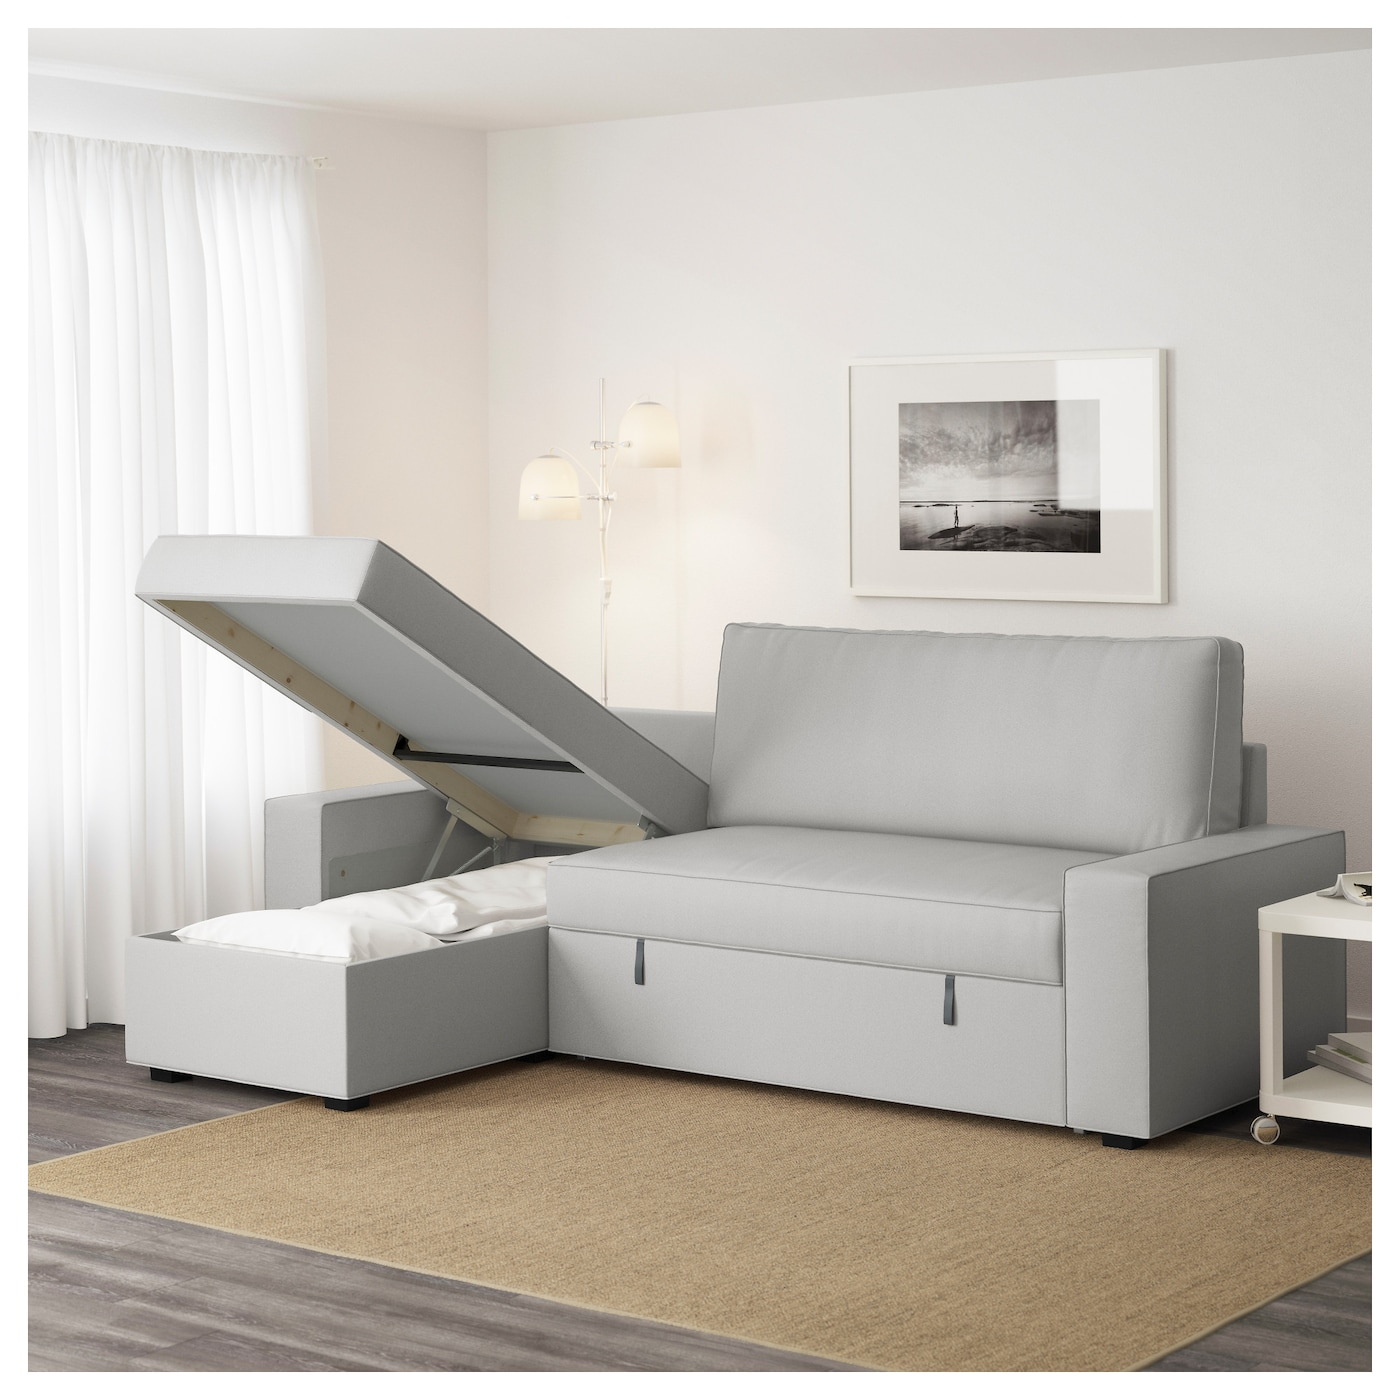 vilasund sofa bed with chaise longue ramna light grey ikea. Black Bedroom Furniture Sets. Home Design Ideas